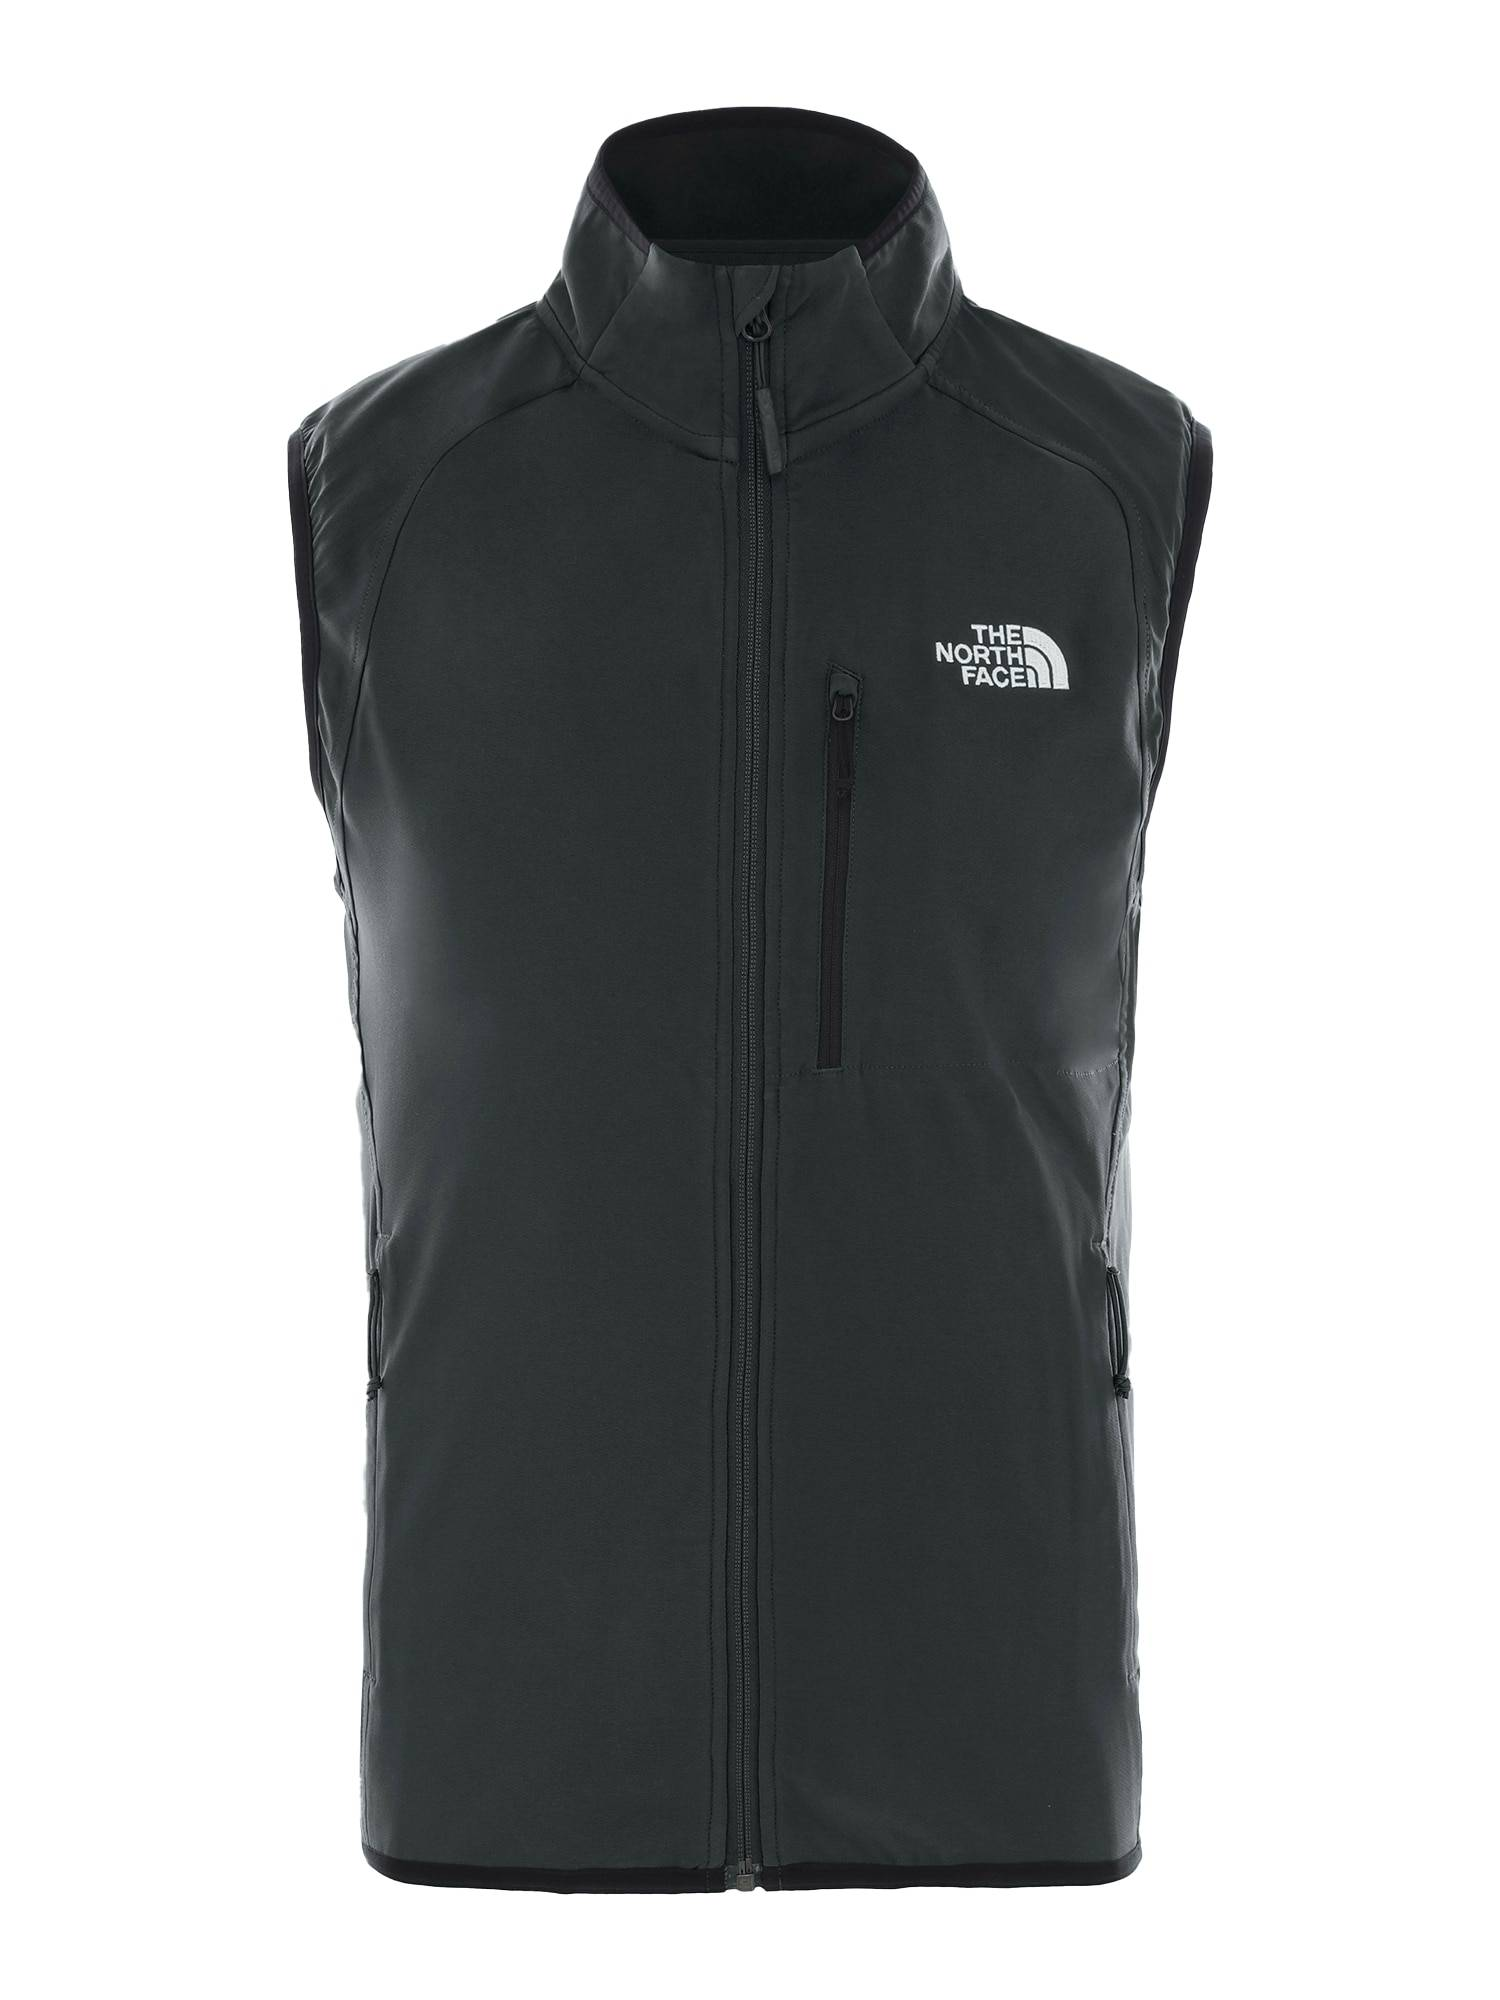 THE NORTH FACE Gilet  - Noir - Taille: L - male